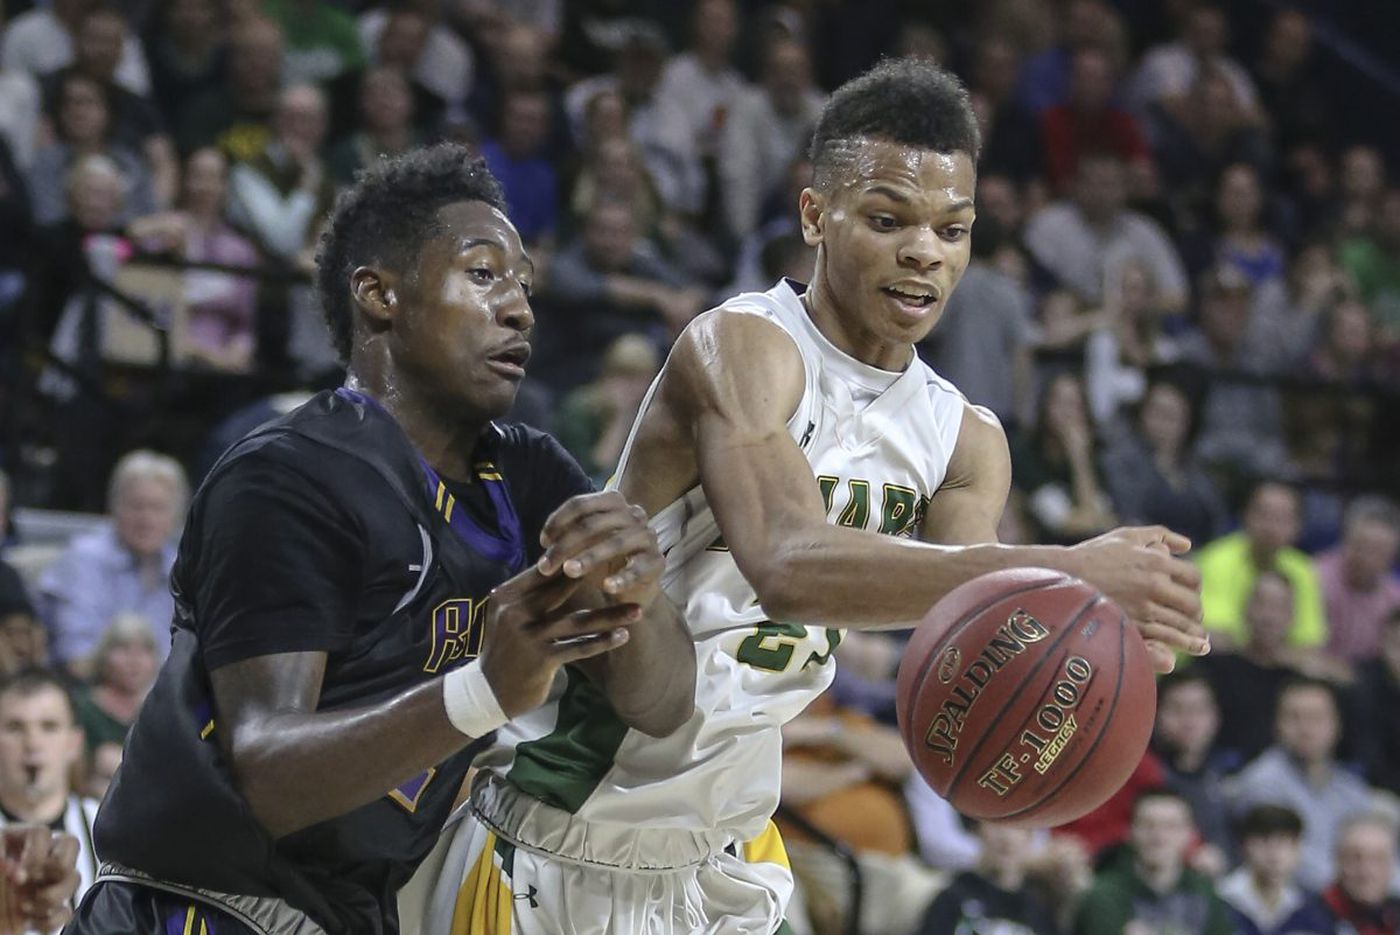 Isaiah Wong leads Bonner-Prendie in overtime of District 12 Class 5A championship